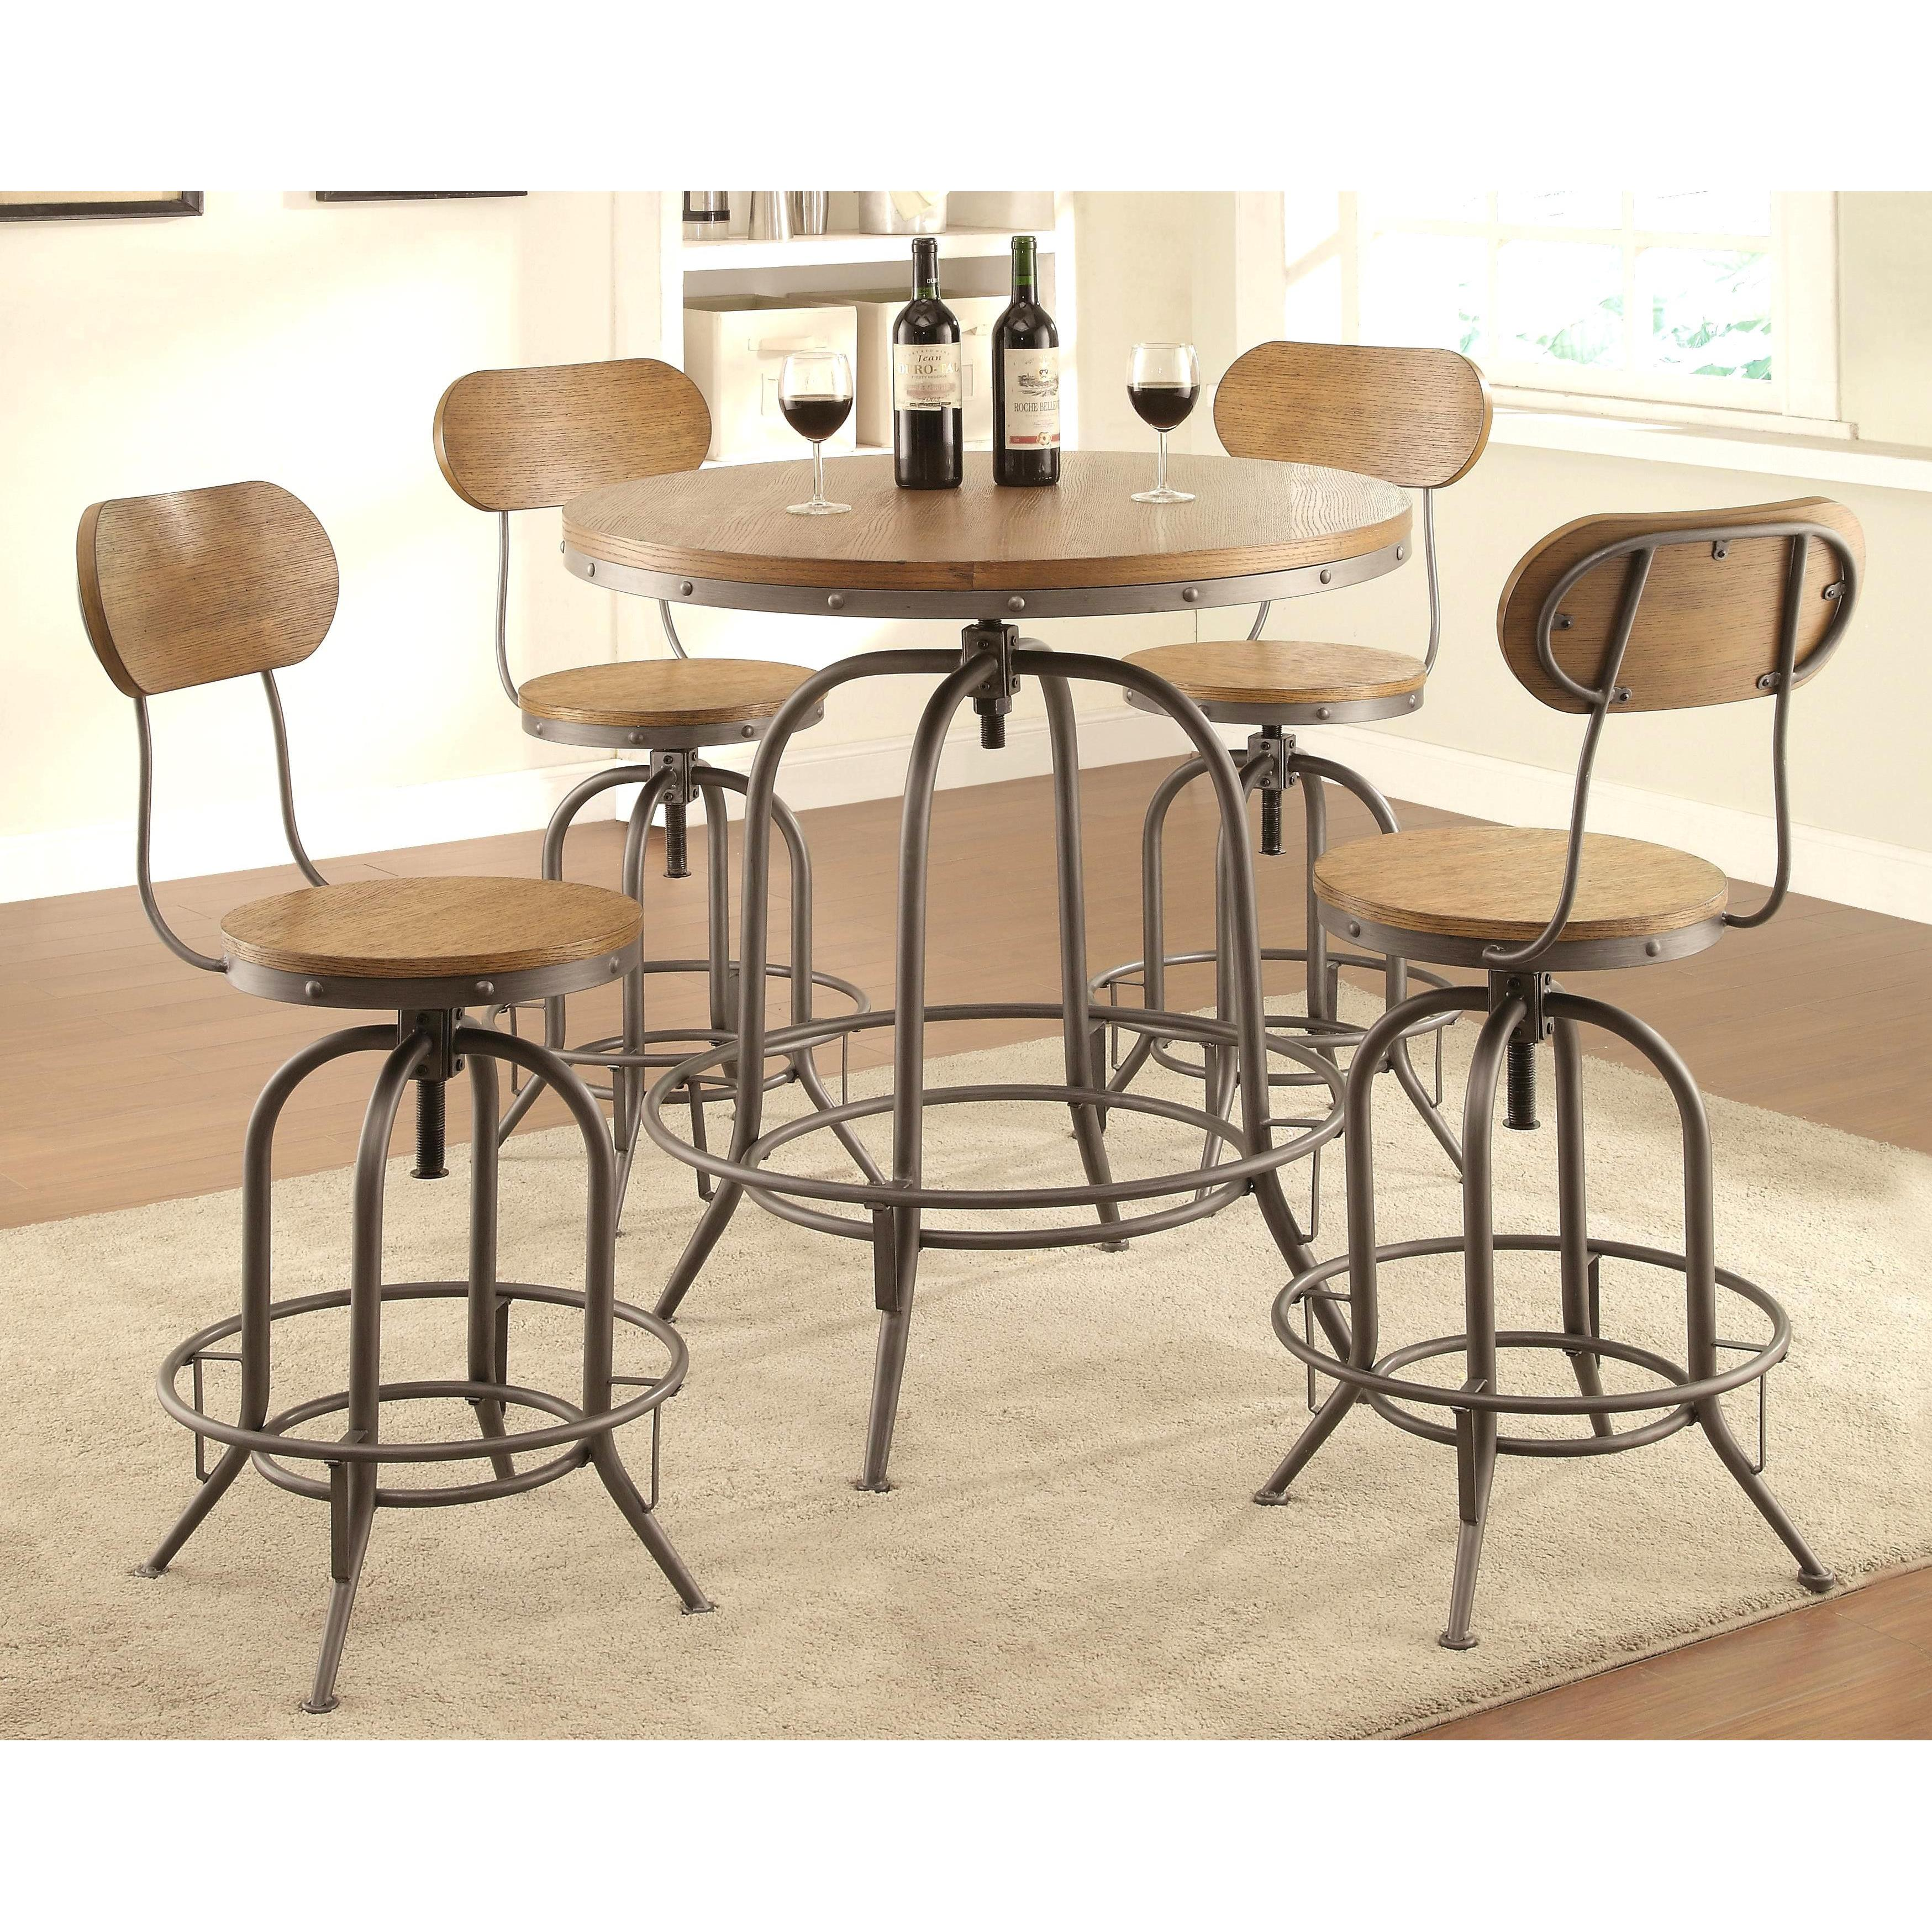 Rolien Nostalgic Farmhouse Distressed Wood Adjustable Bar Table And Stools  5 Piece Set   Free Shipping Today   Overstock   17730221